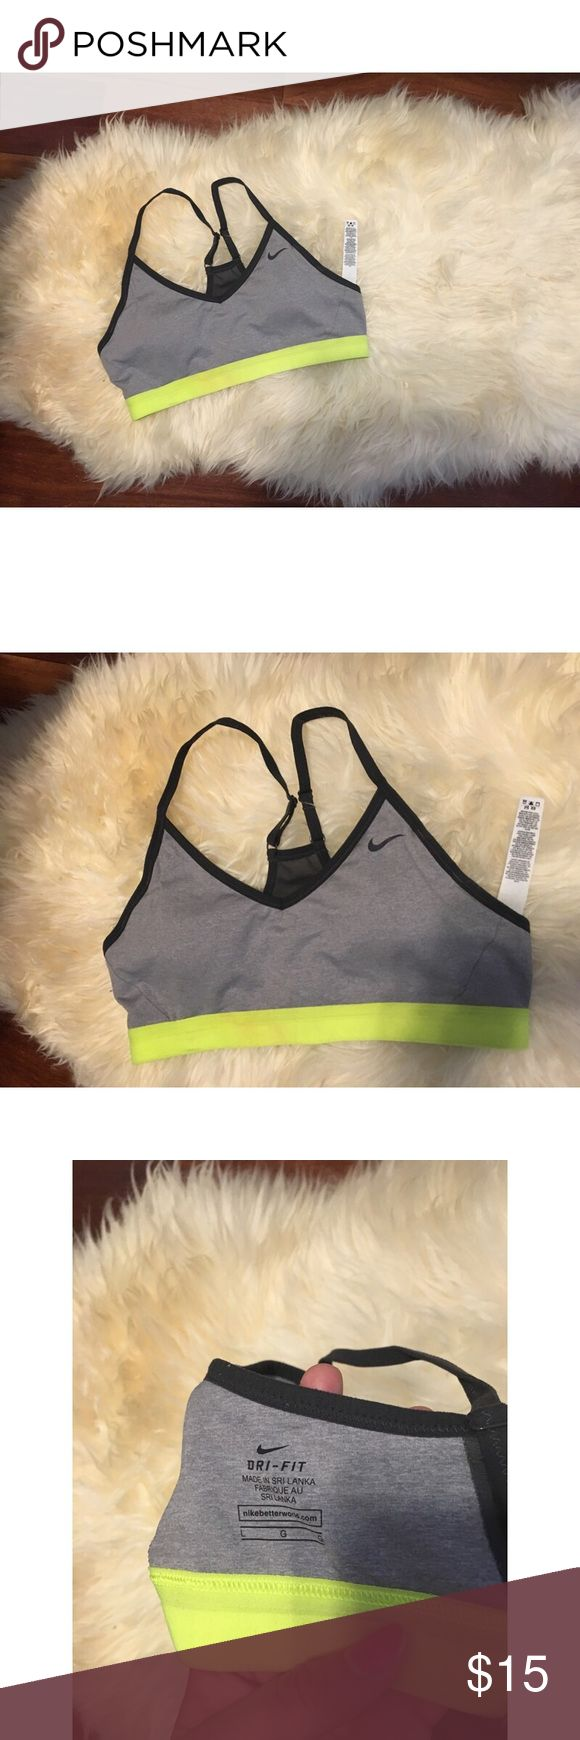 Nike Neon and Grey Sports Bra 💕 this is a lightly loved neon and gray Sports Bra from the brand Nike. No signs of wear. Worn once thinking I was going to work out 💕 Nike Intimates & Sleepwear Bras